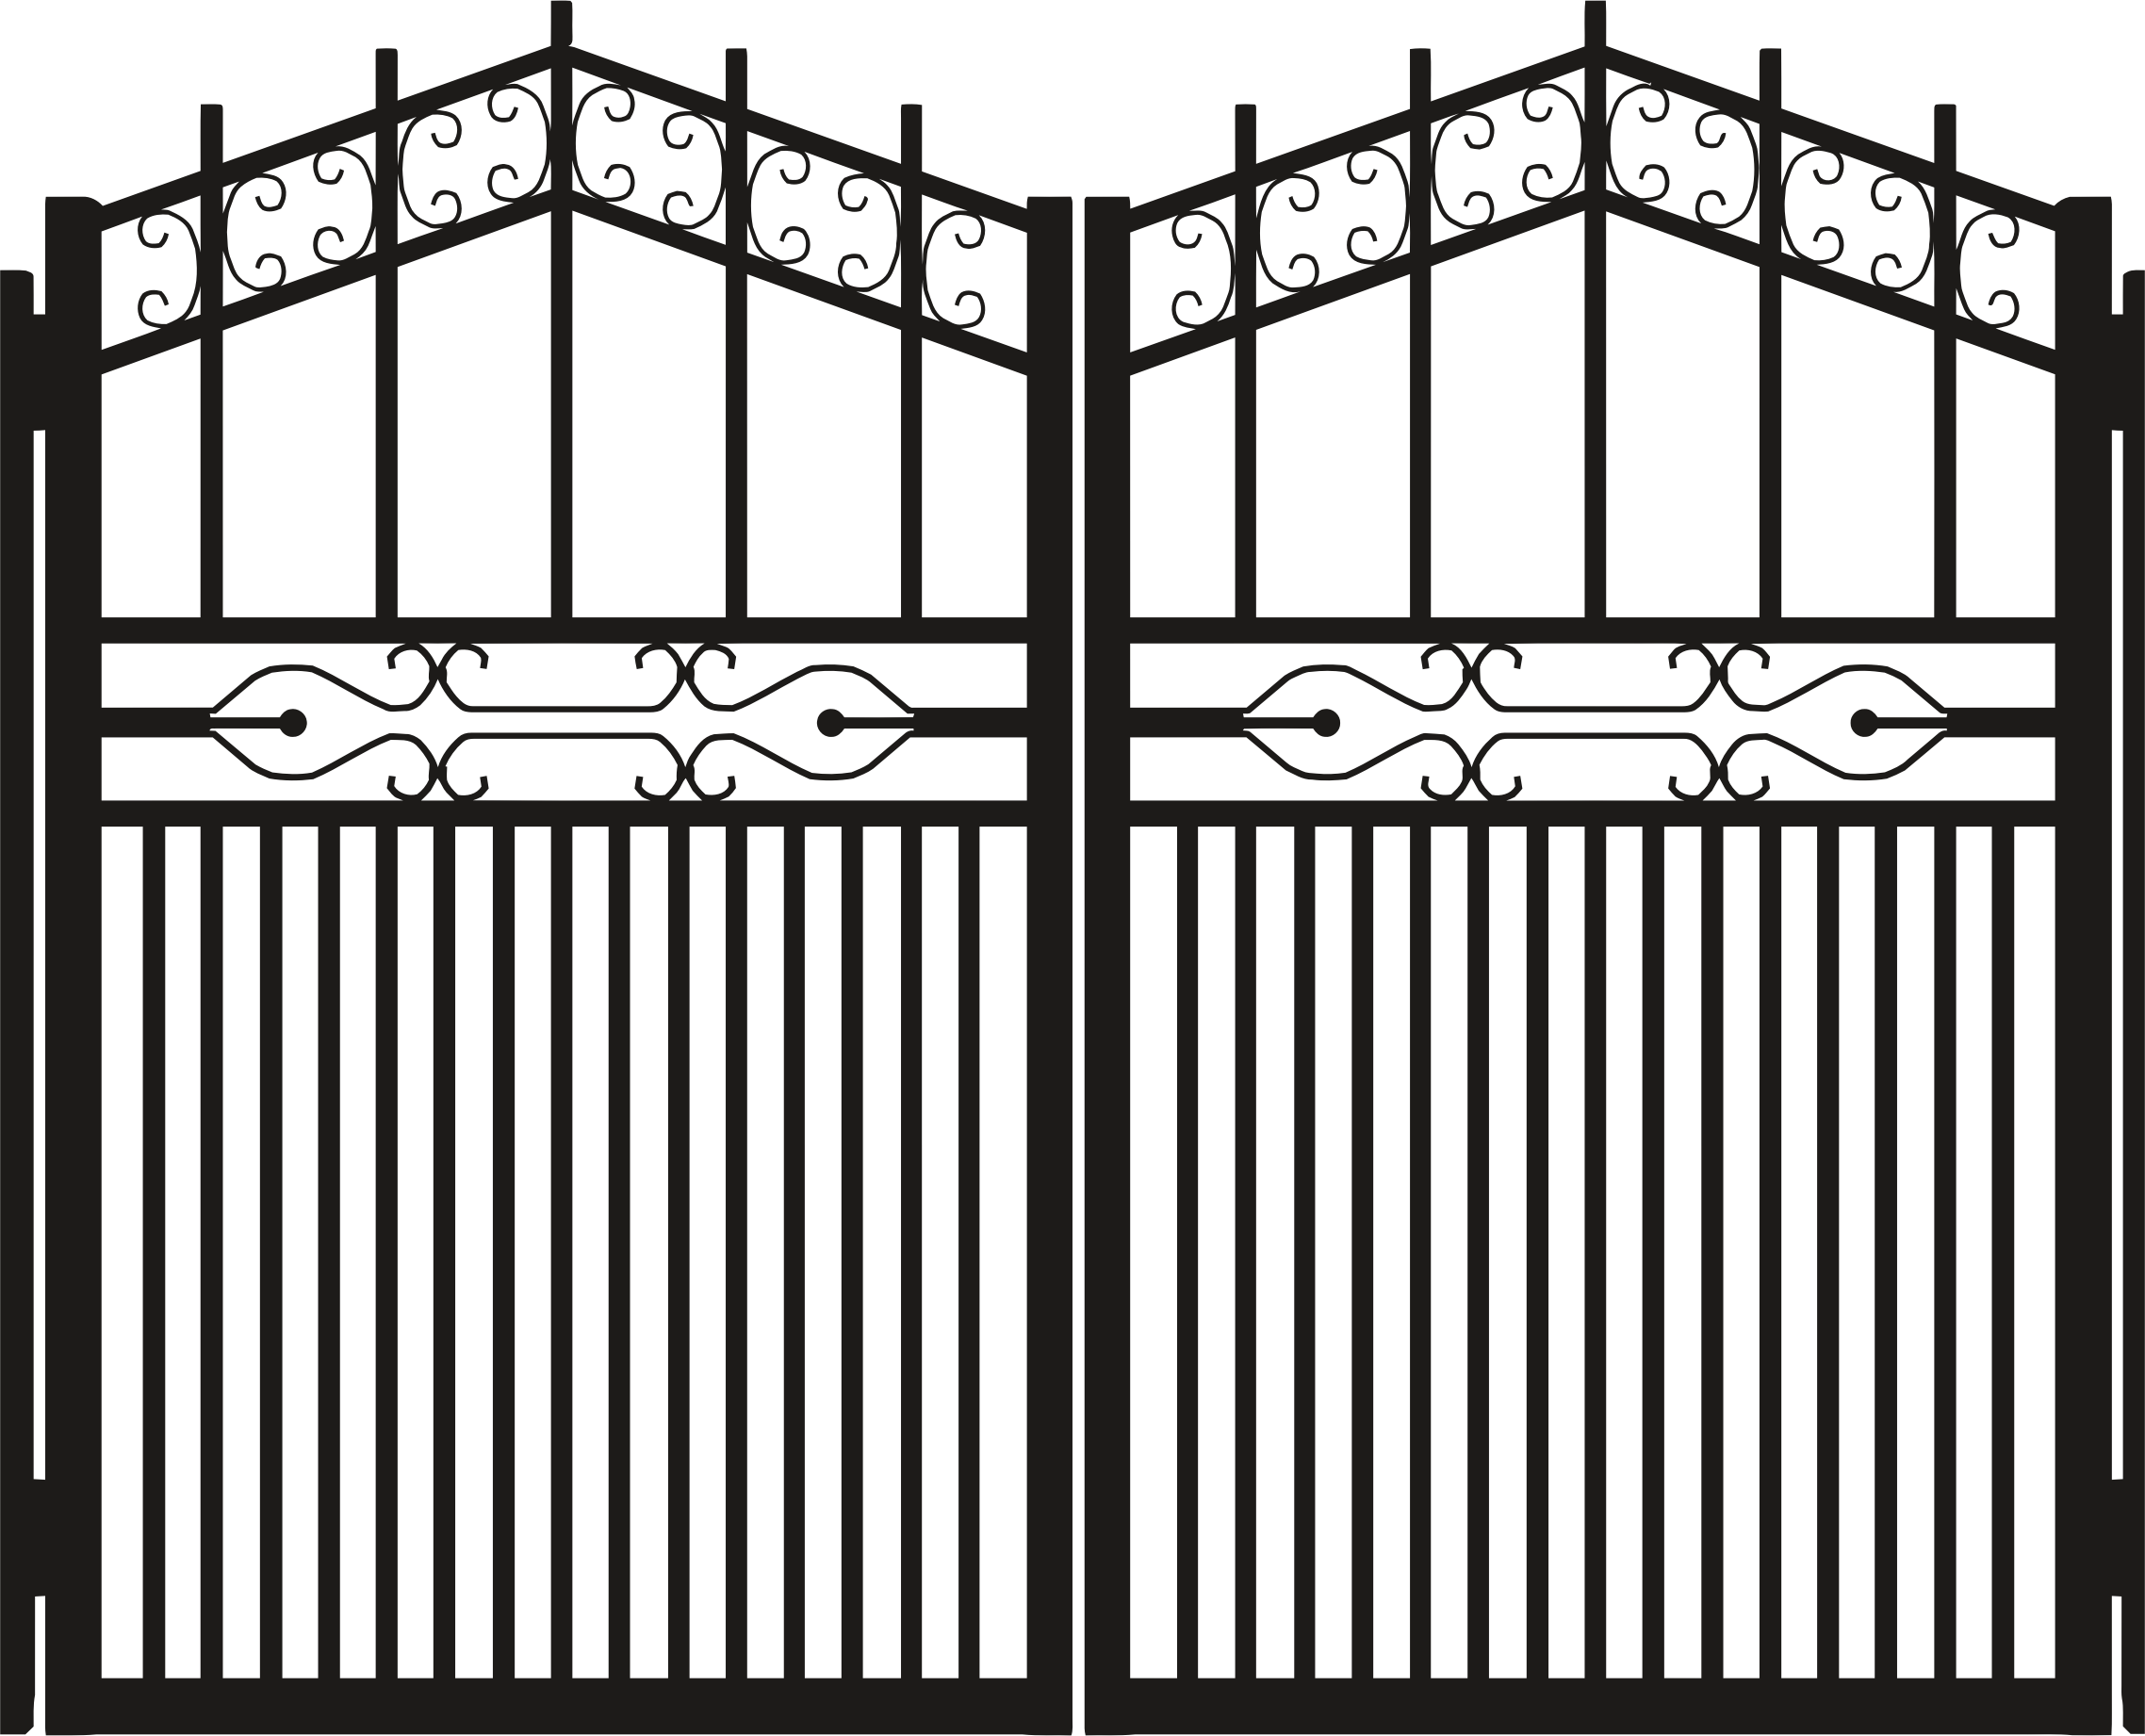 Iron gate silhouette clipart.